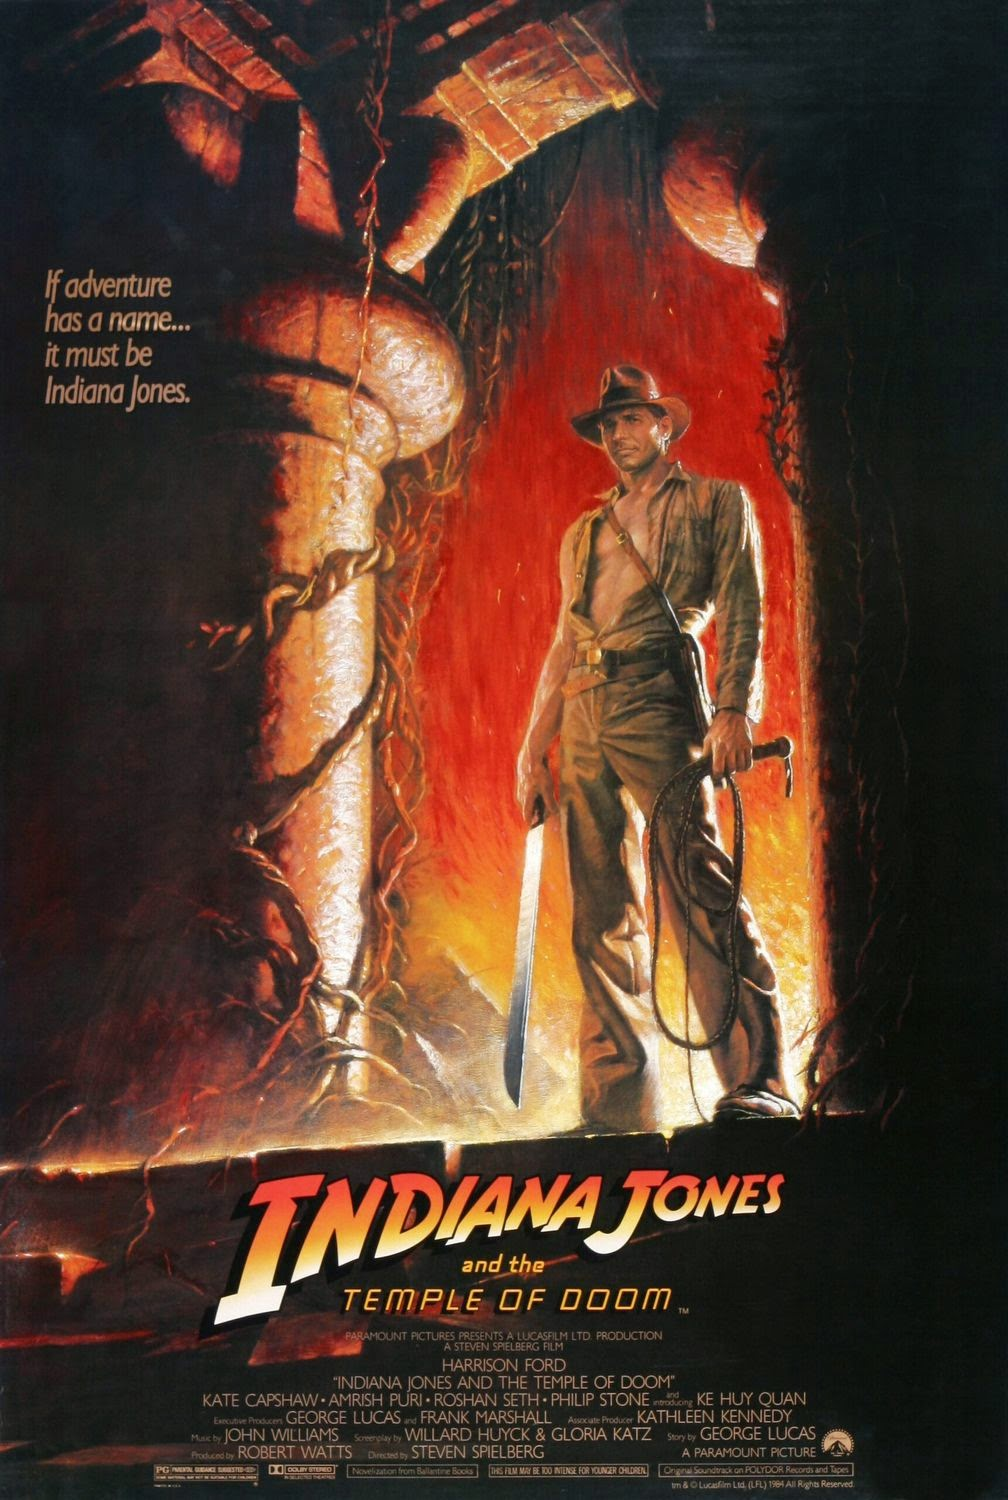 Indiana Jones and the Temple of Doom Teaser Poster